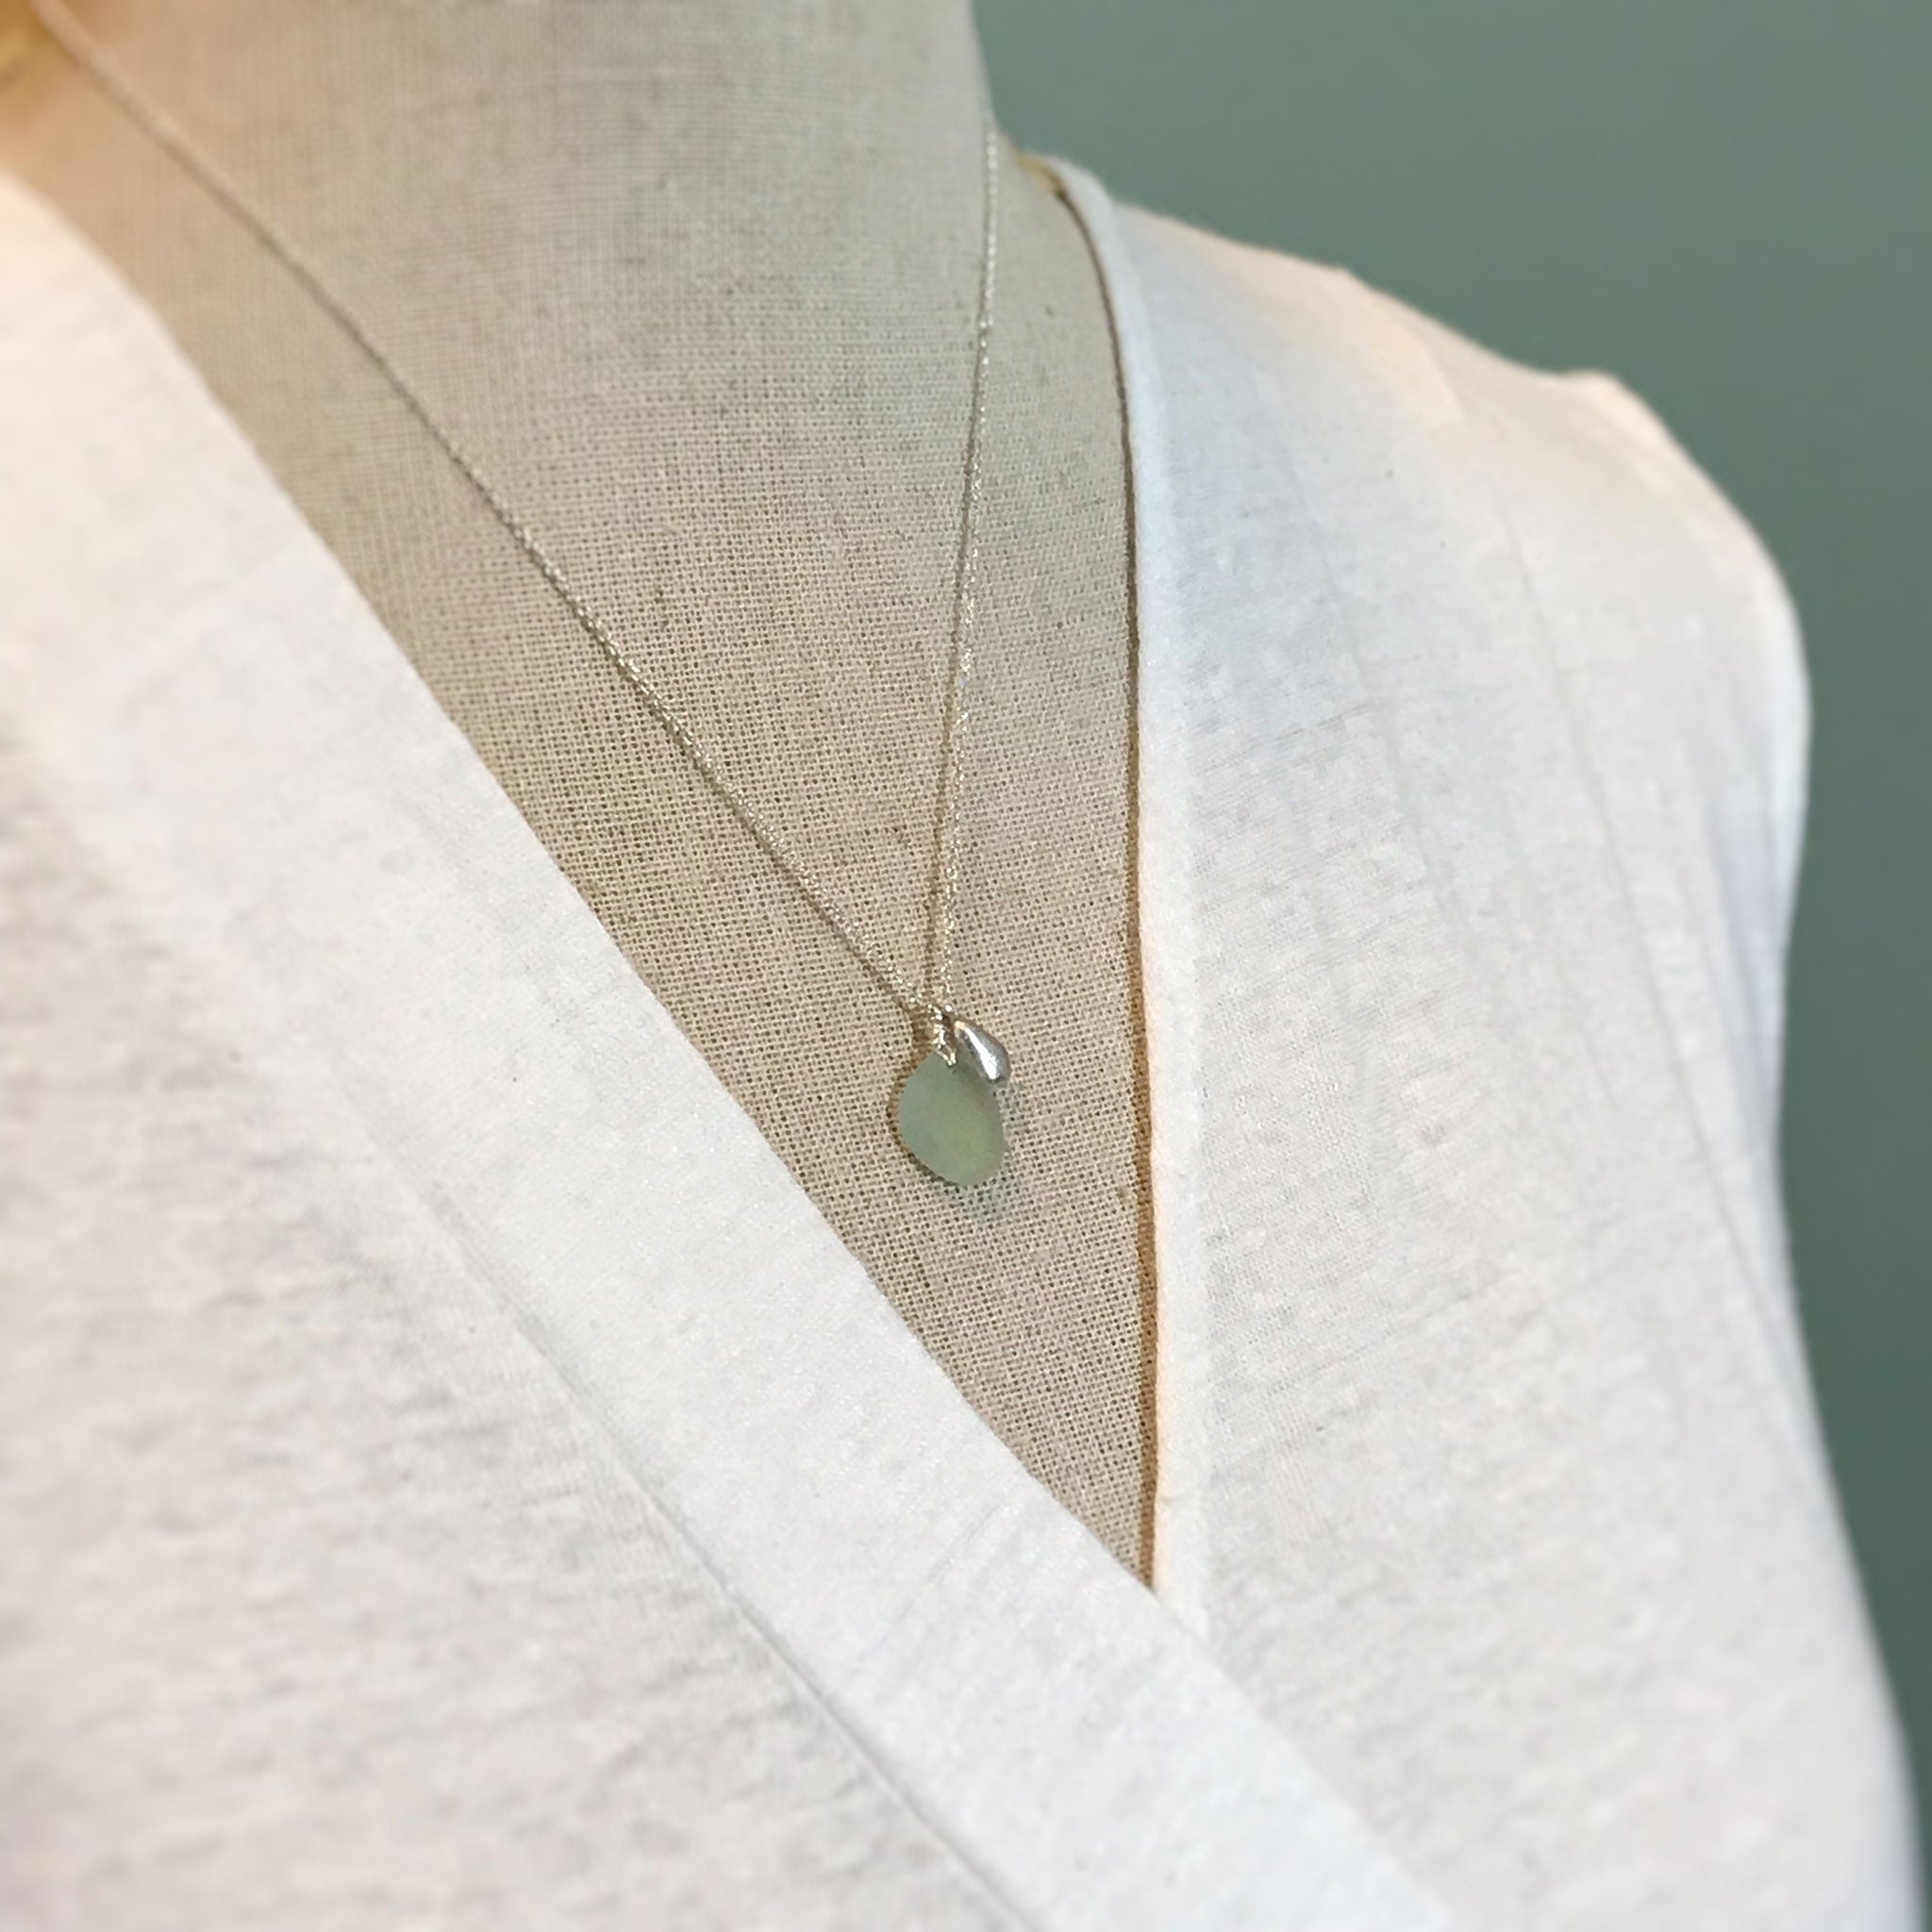 Pale Green Necklace with Seaglass and Solid Silver Charm - kriket-broadhurst jewellery Australian made